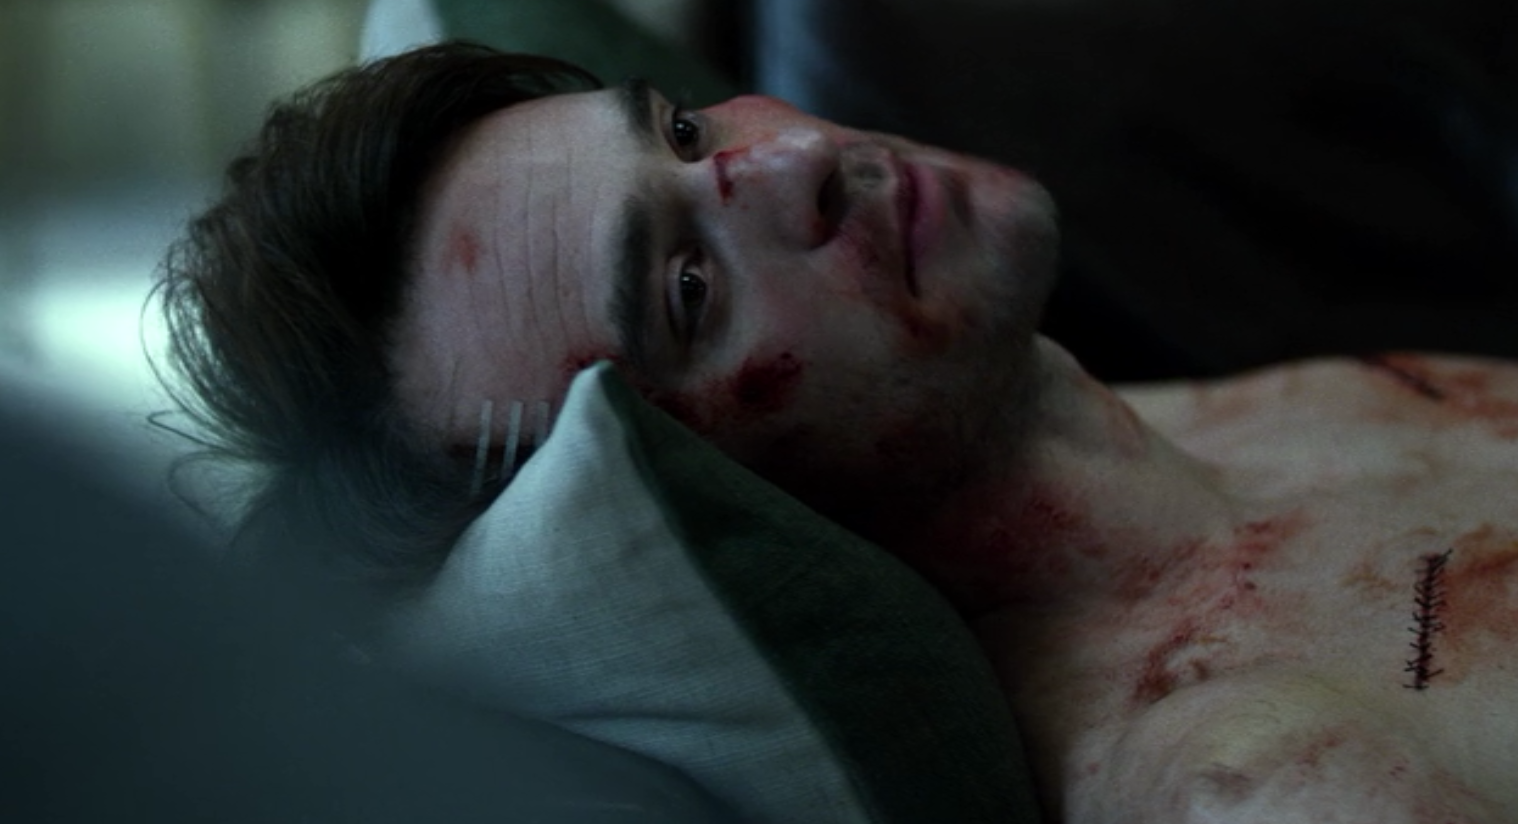 Those stitches aren't for show, Murdock took some serious hits